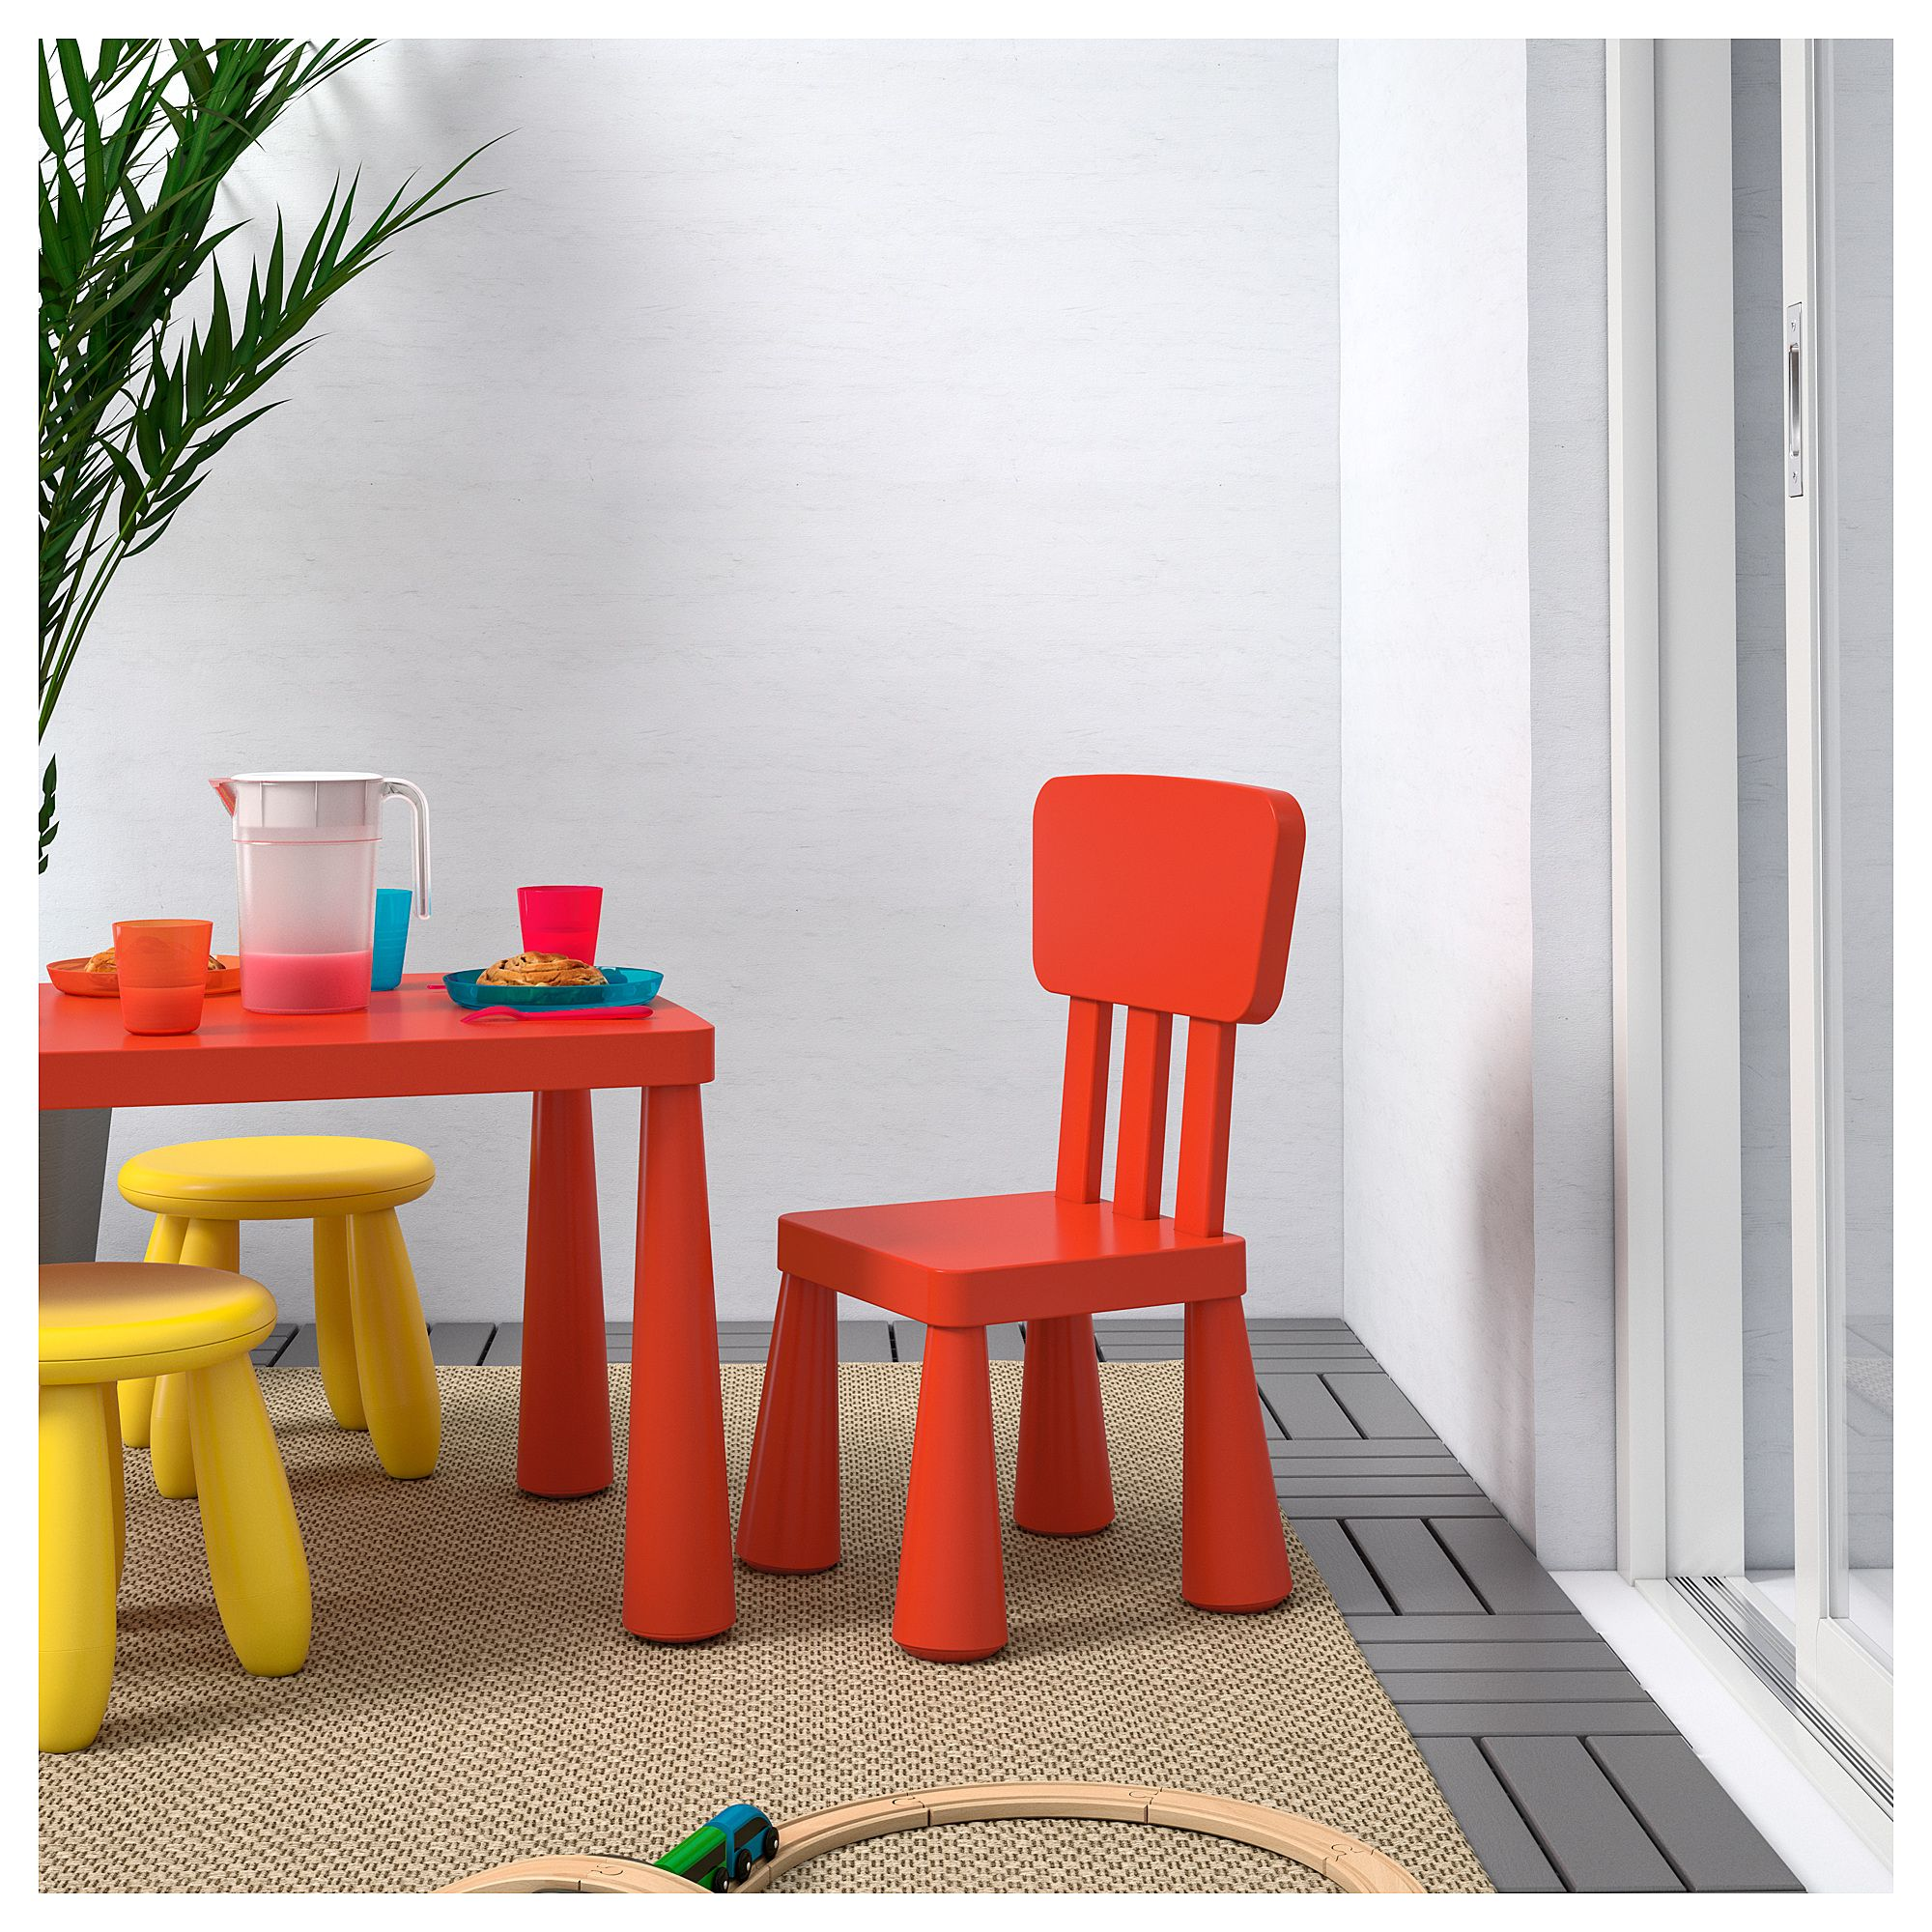 Tremendous Ikea Mammut Childrens Chair Indoor Outdoor Red Caraccident5 Cool Chair Designs And Ideas Caraccident5Info